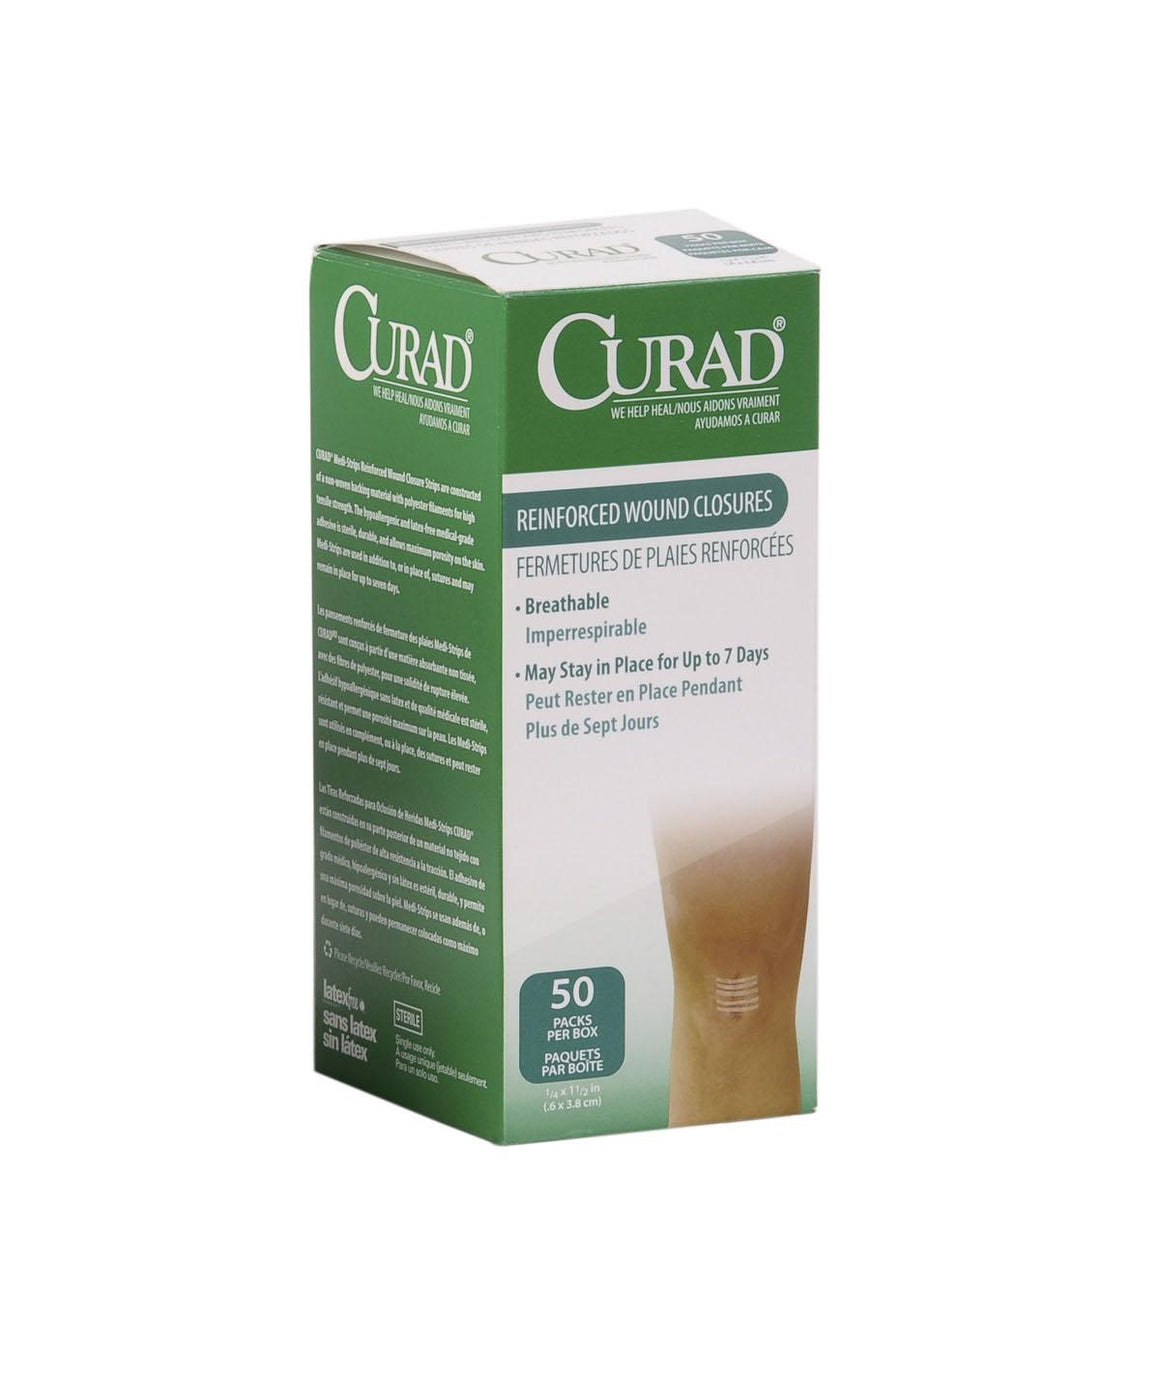 CURAD Sterile Medi-Strips,White, Box of 300